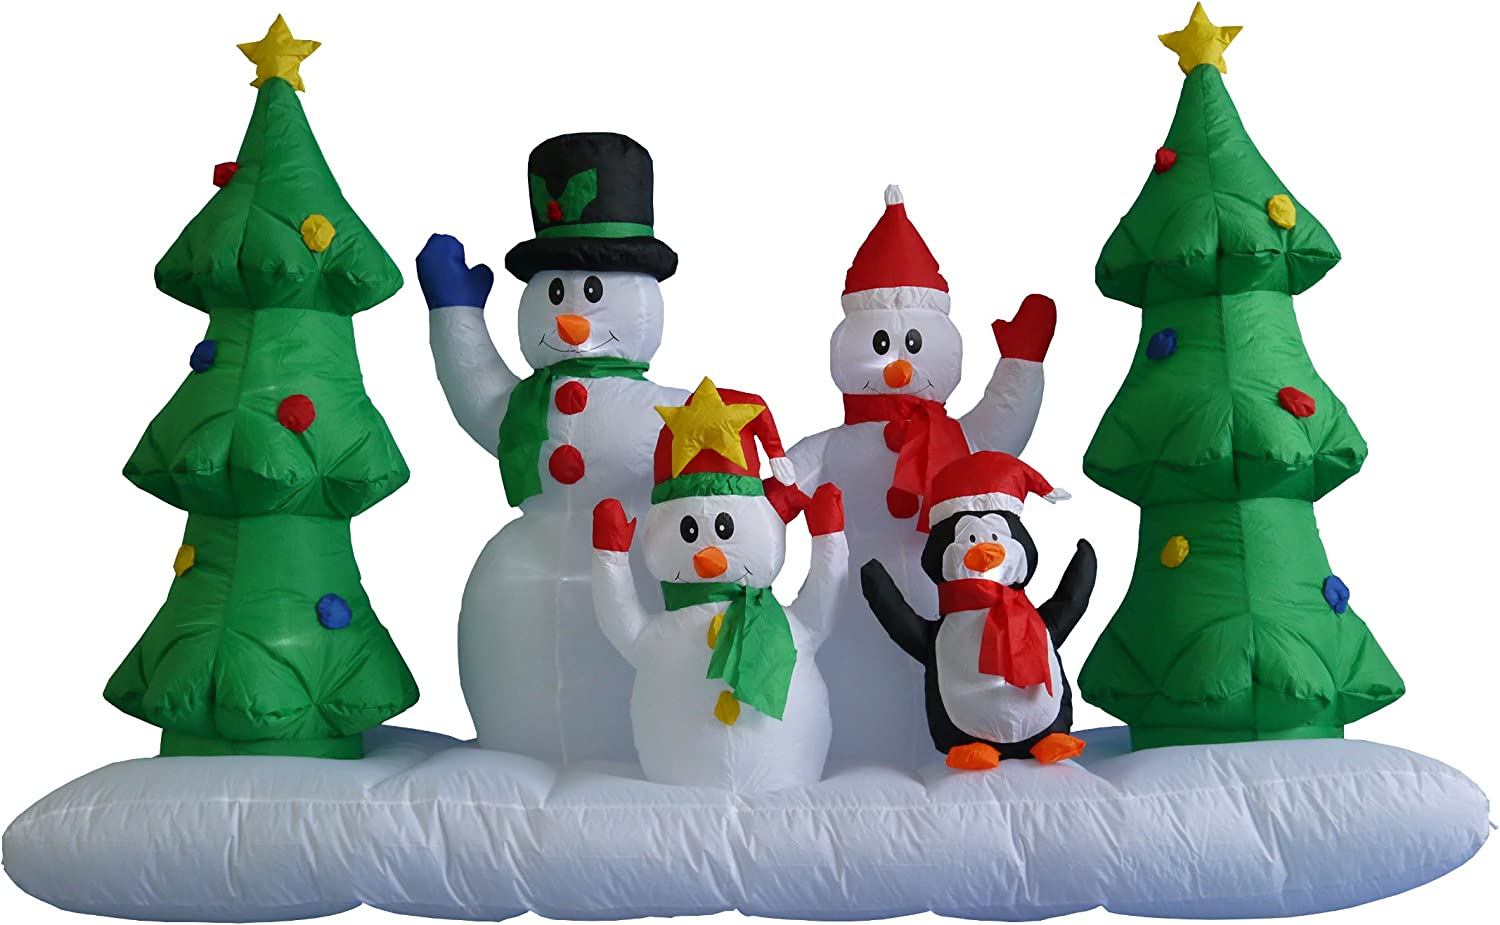 8 Foot Wide Inflatable Snowmen Family with Penguin and Christmas Trees Party Decoration Lights Decor Outdoor Indoor Holiday Decorations, Blow up Lighted Yard Decor, Lawn Inflatables Home Family